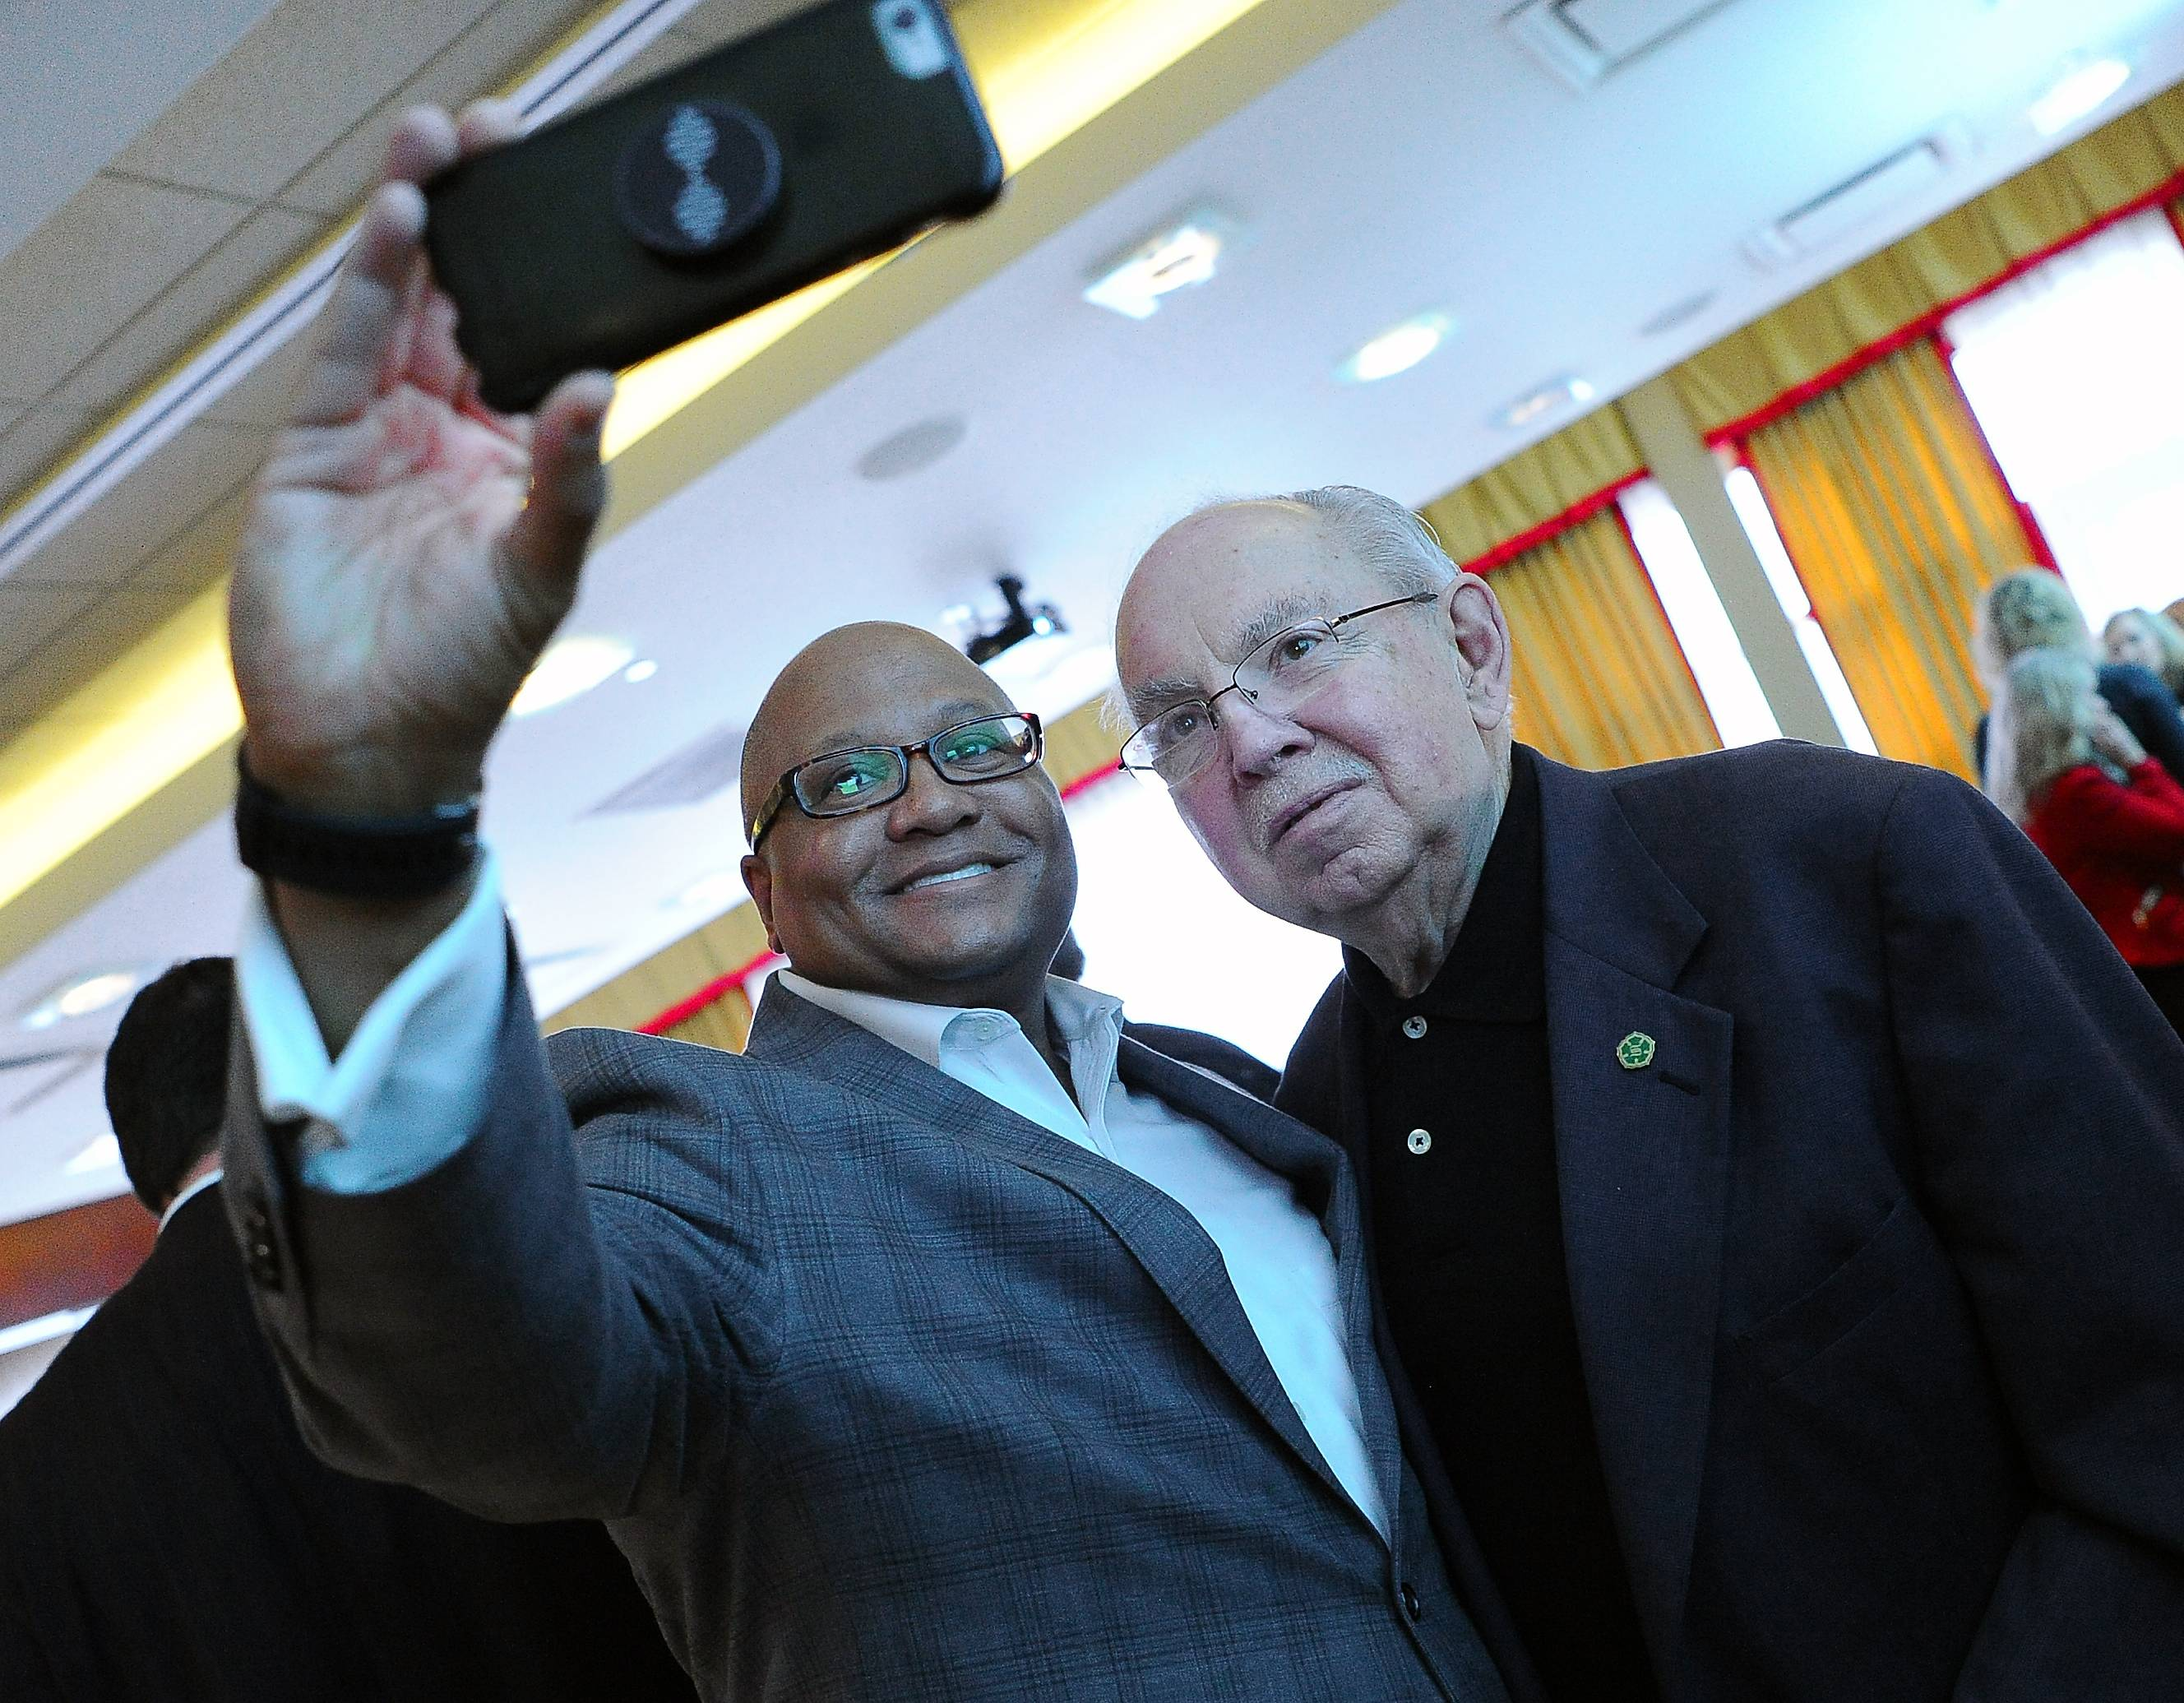 Schaumburg Mayor Al Larson takes a photo with Donovan Pepper, national director of local government relations for Walgreens, at the annual state of the village address before the Schaumburg Business Association on Tuesday.